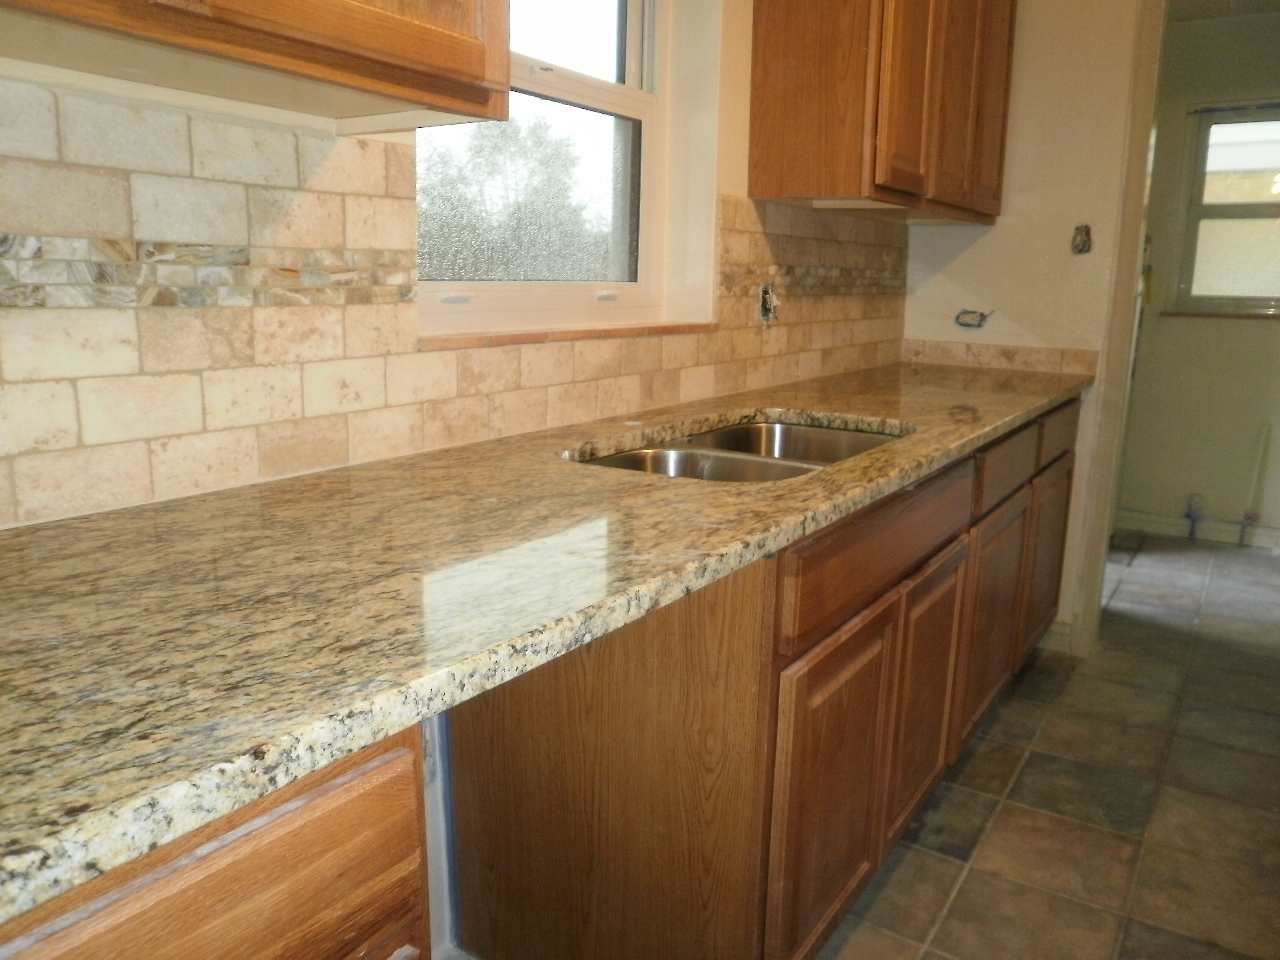 Pictures Of Granite Kitchen Countertops And Backsplashes Painted Cabinets Integrity Installations A Division Front